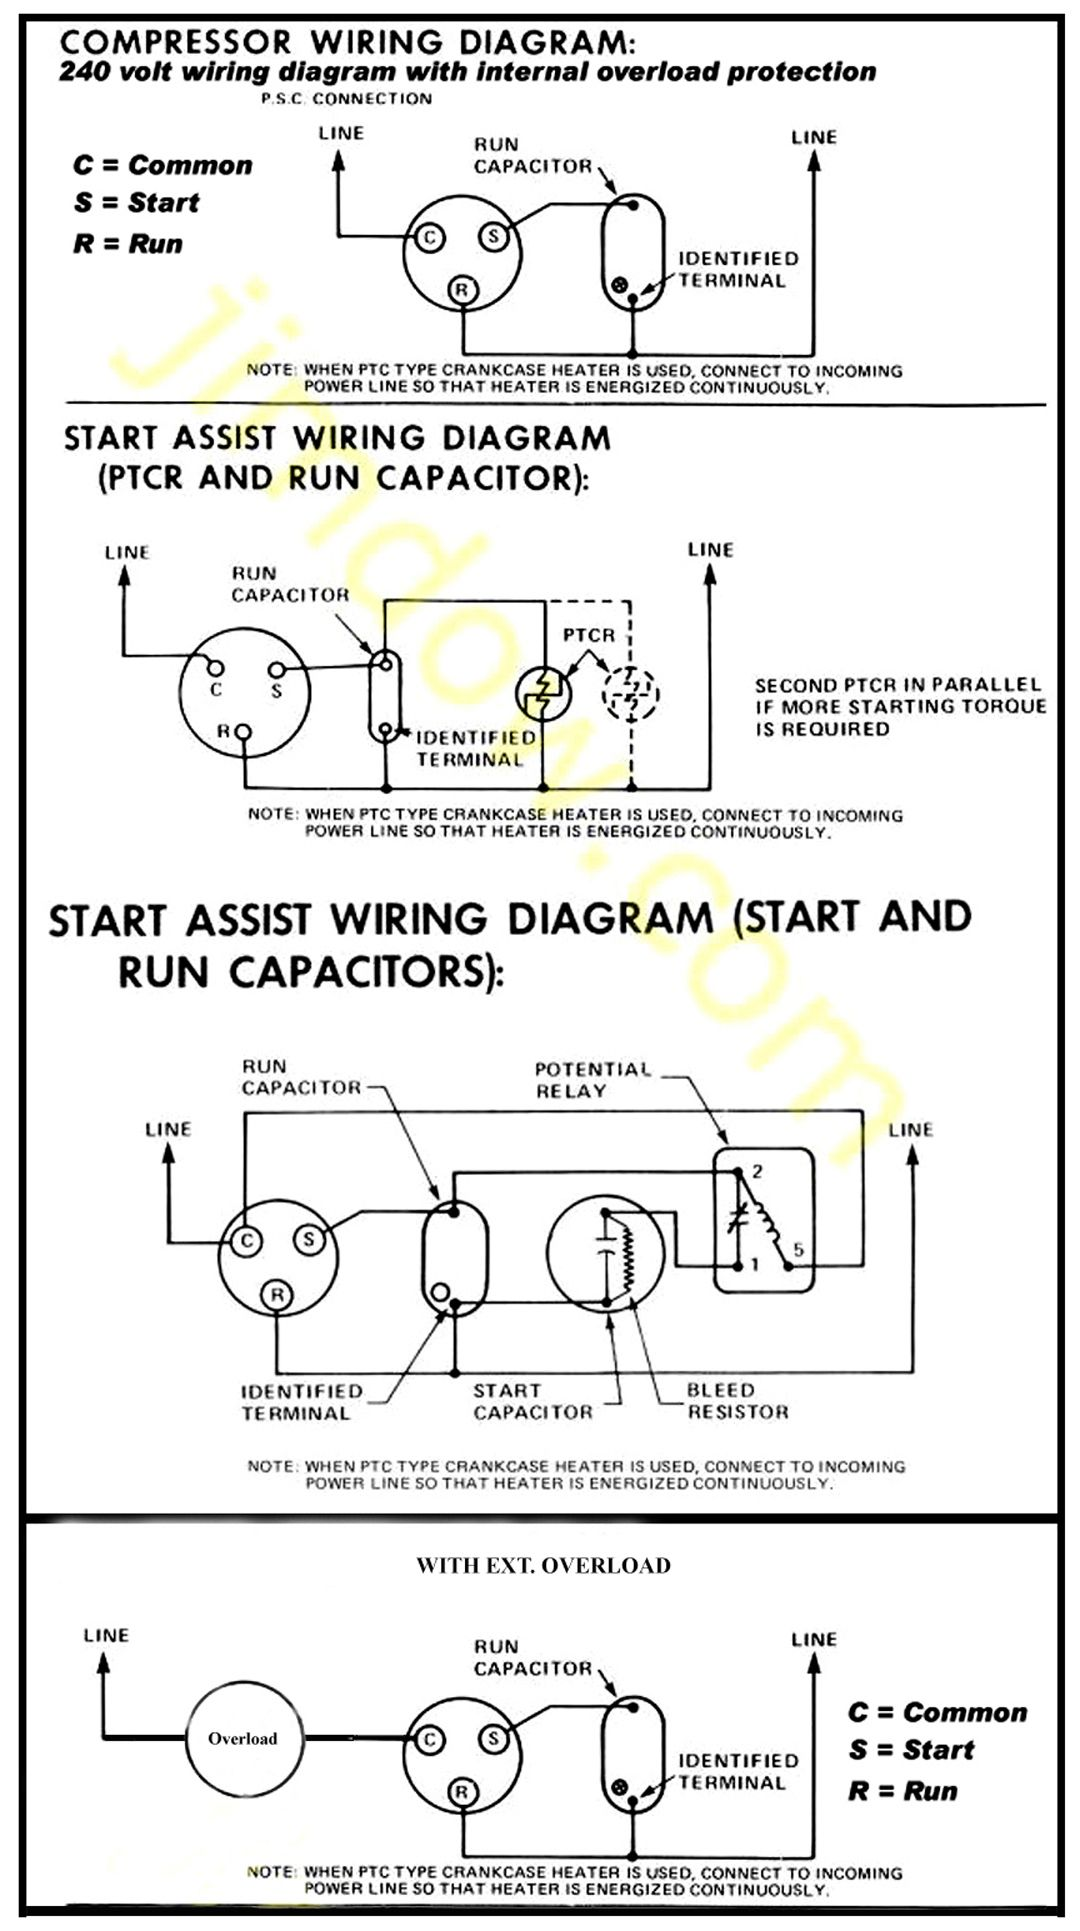 Wiring Diagram For 220 Volt Air Compressor - bookingritzcarlton.info |  Refrigeration and air conditioning, Hvac air conditioning, Air conditioner  compressorPinterest